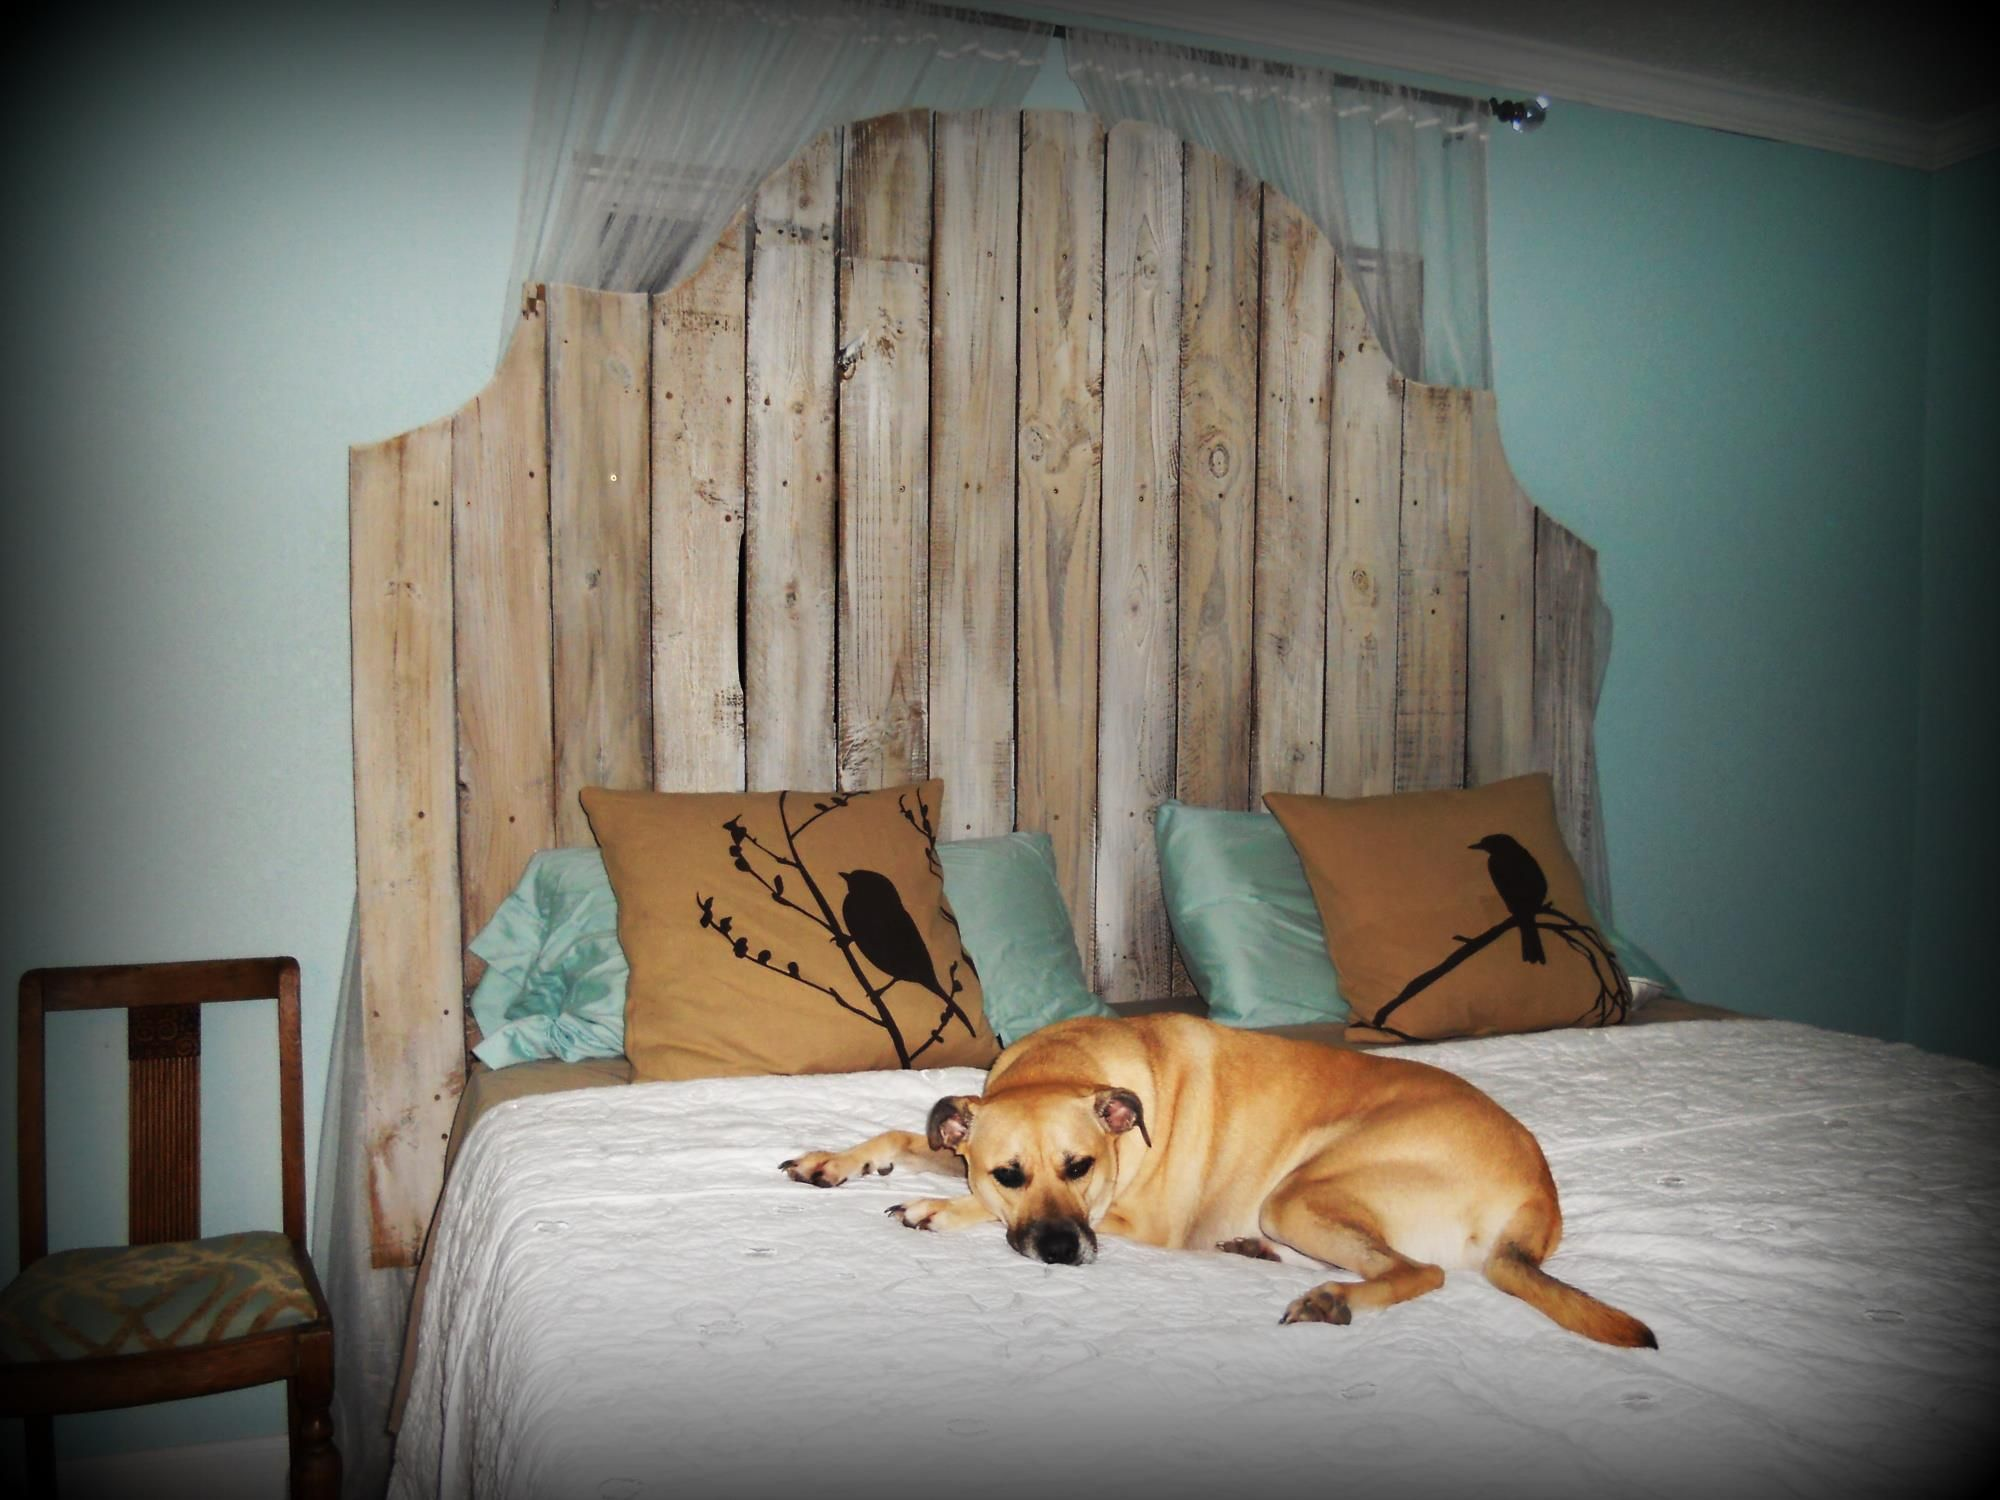 Furniture Rustic Wood Bed Headboards With Mantel Having: Rustic Headboard Made From Old Fence Pickets.